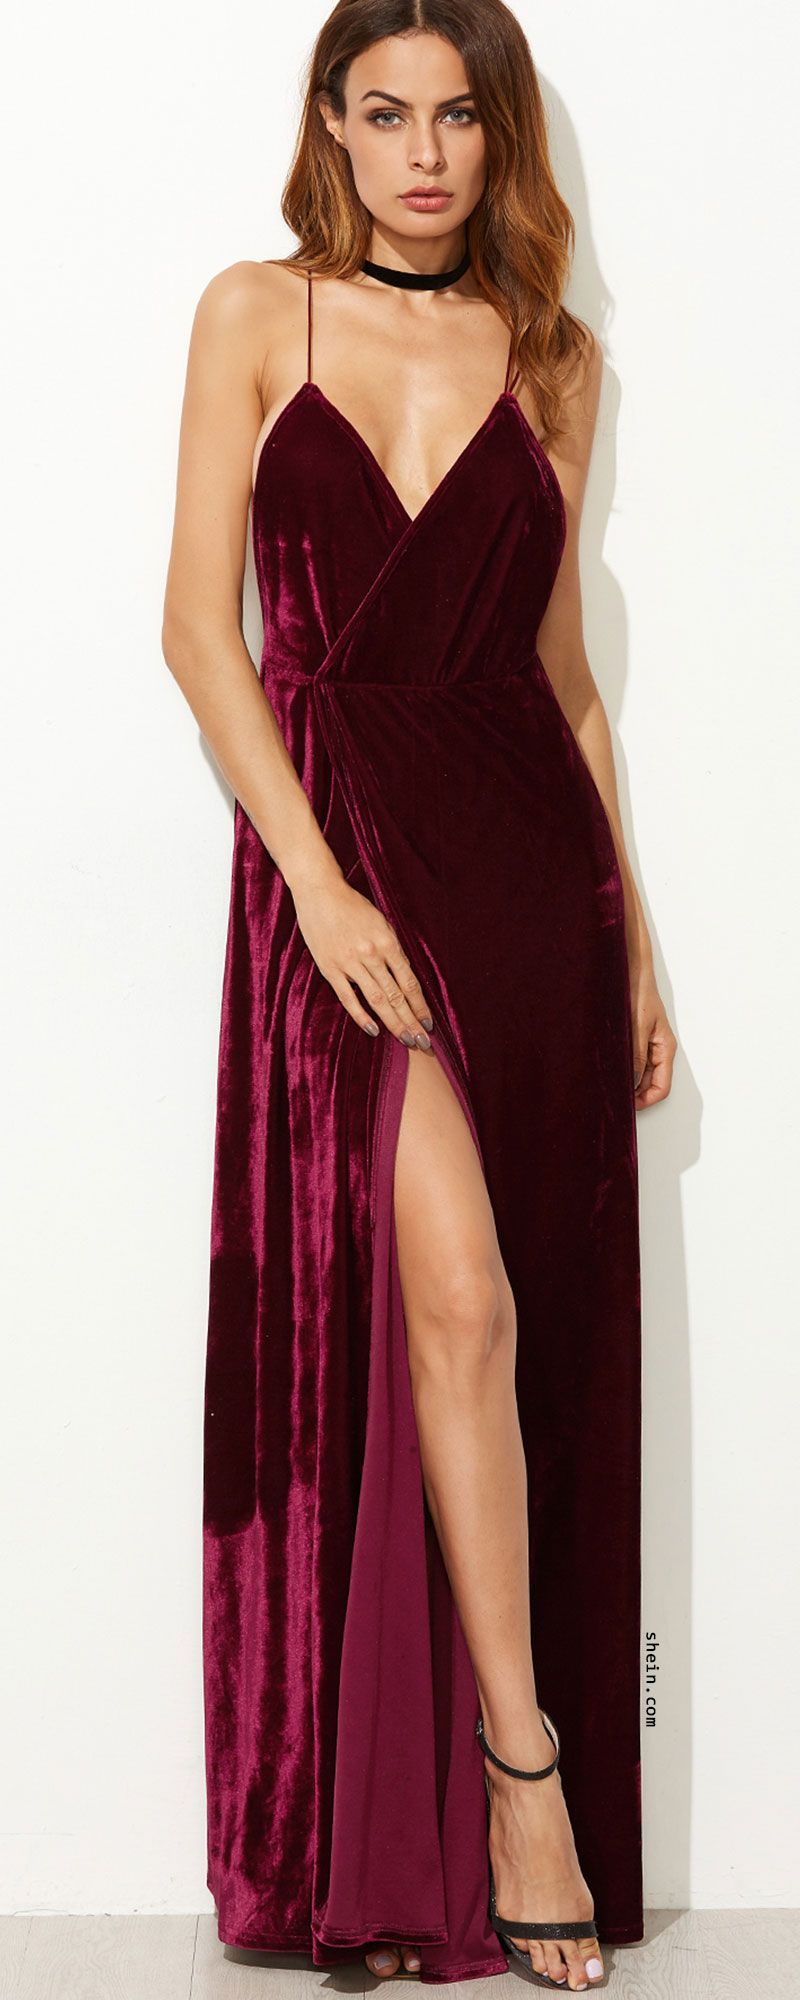 3b8ae436db8d Burgundy Strappy Backless Velvet Wrap Dress | Love to Wear ...